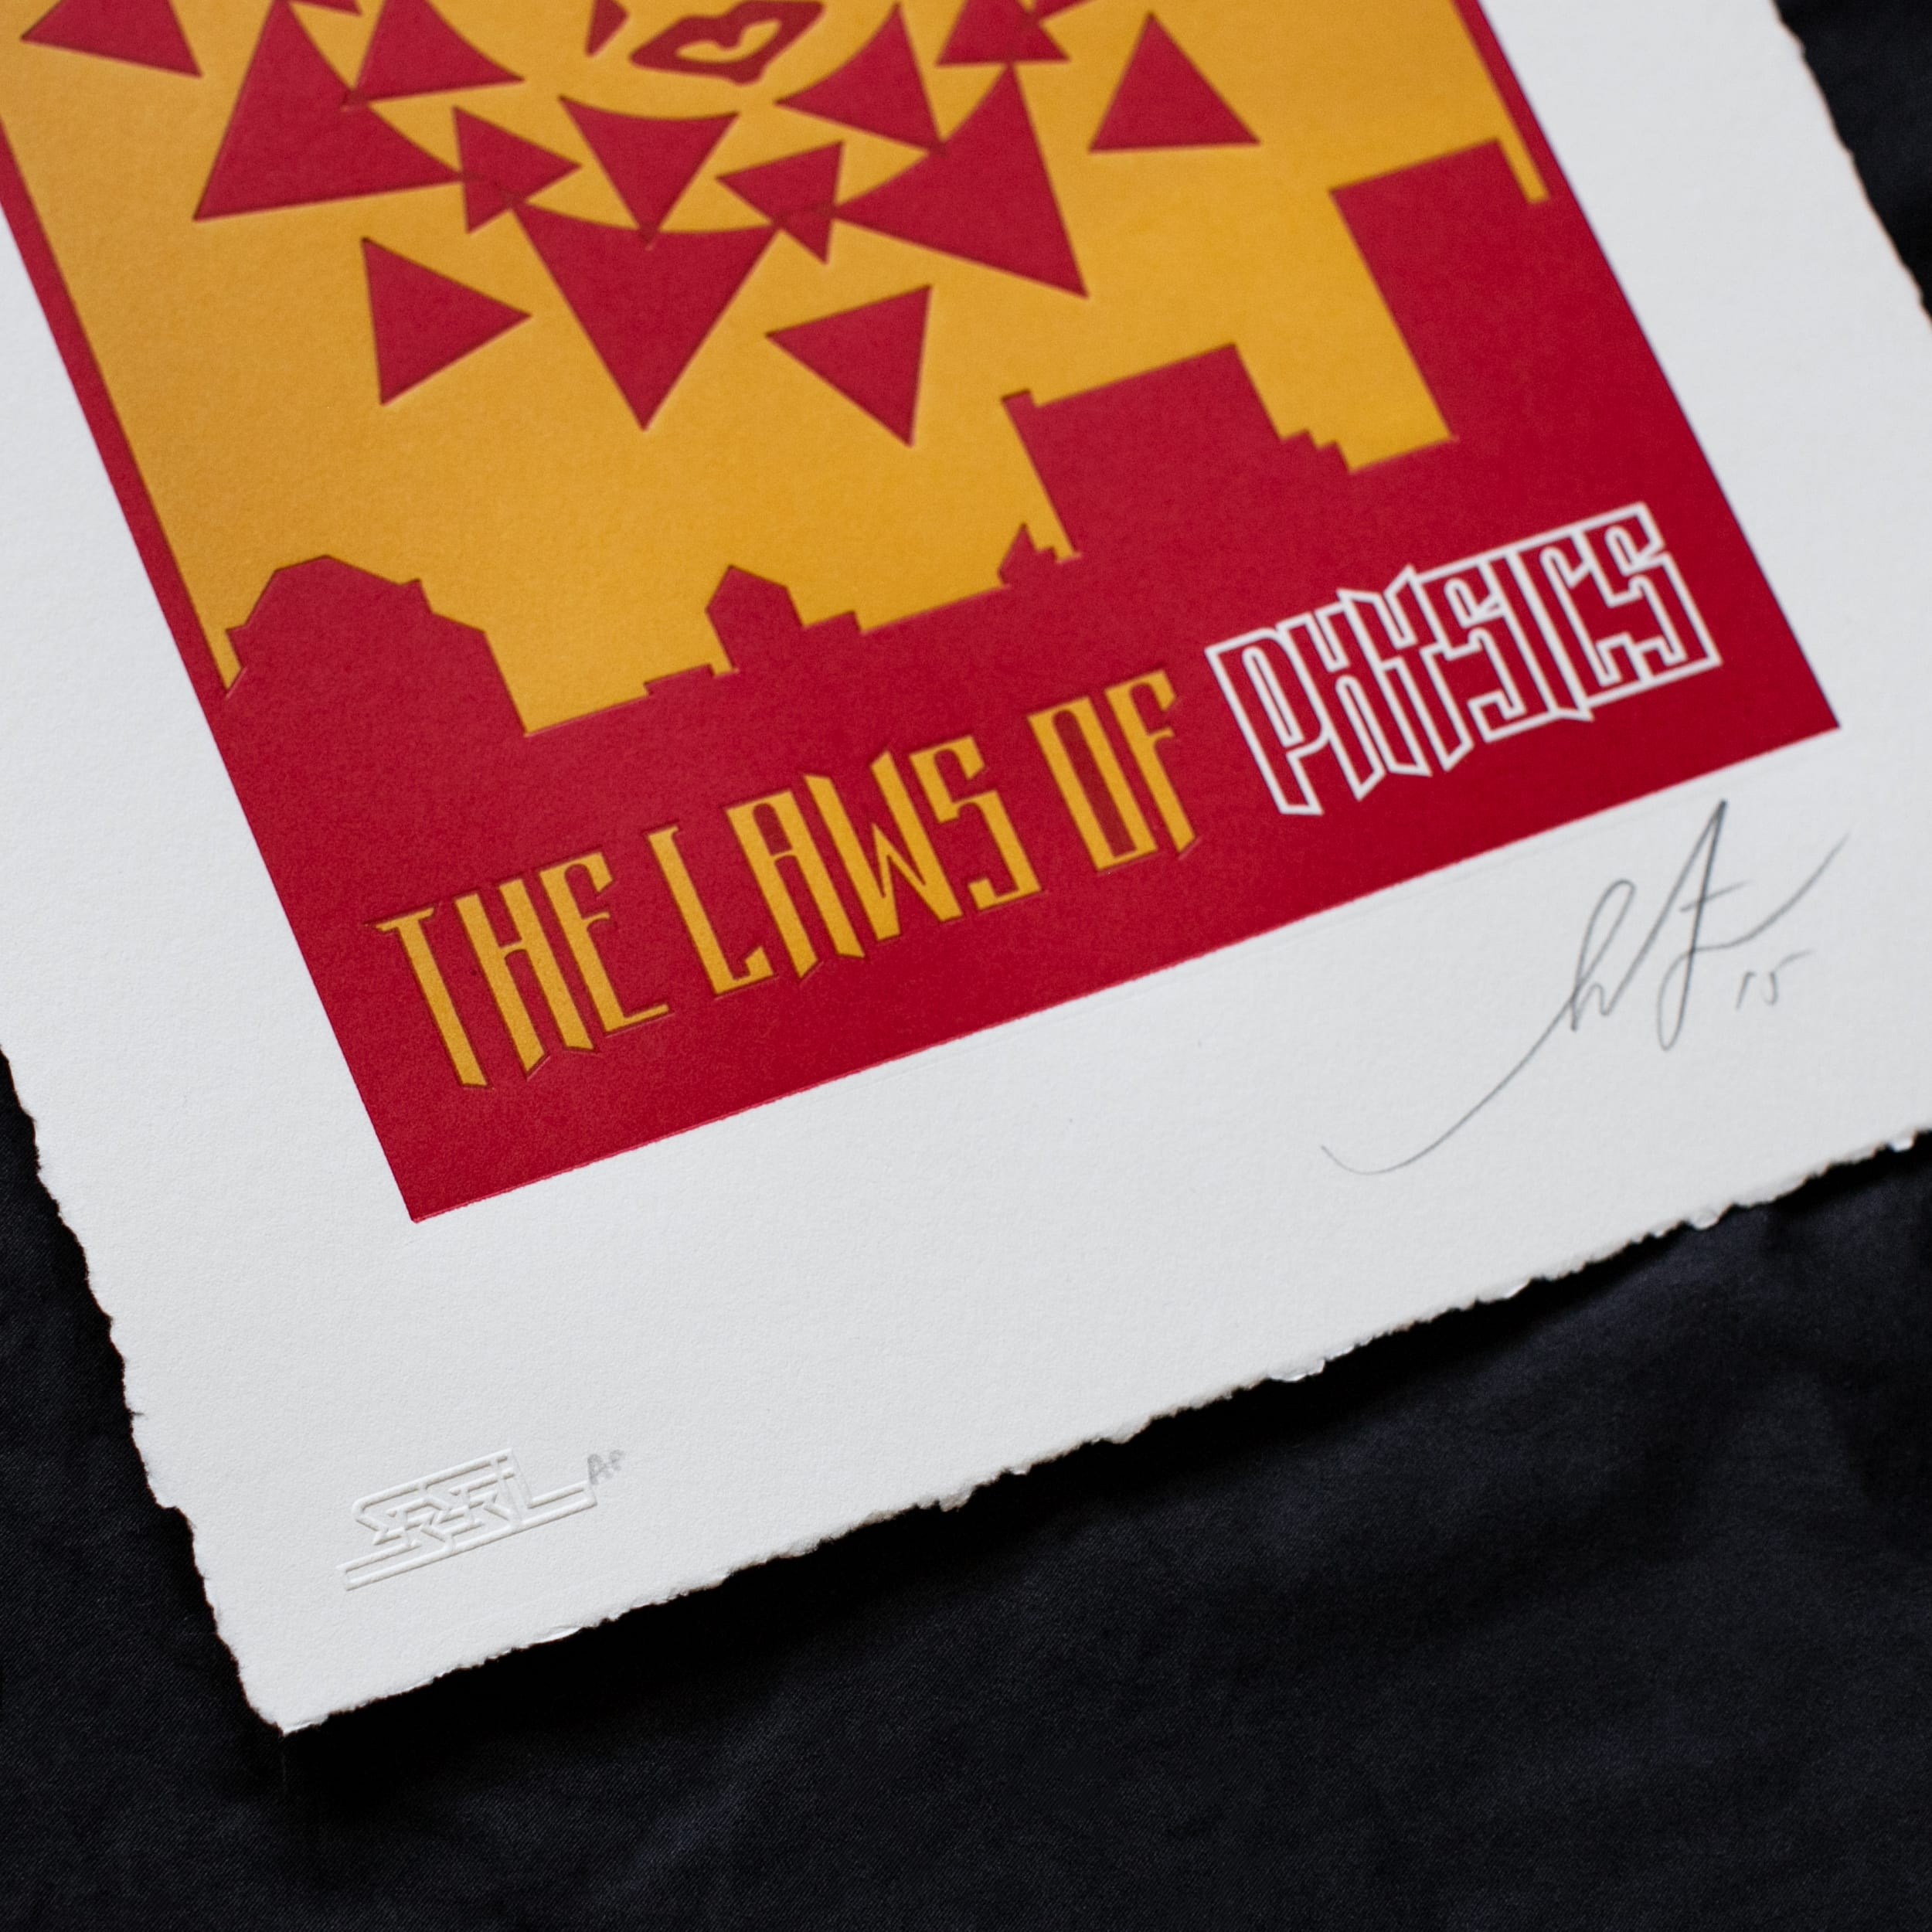 The laws of physics - Shepard Fairey Image 5